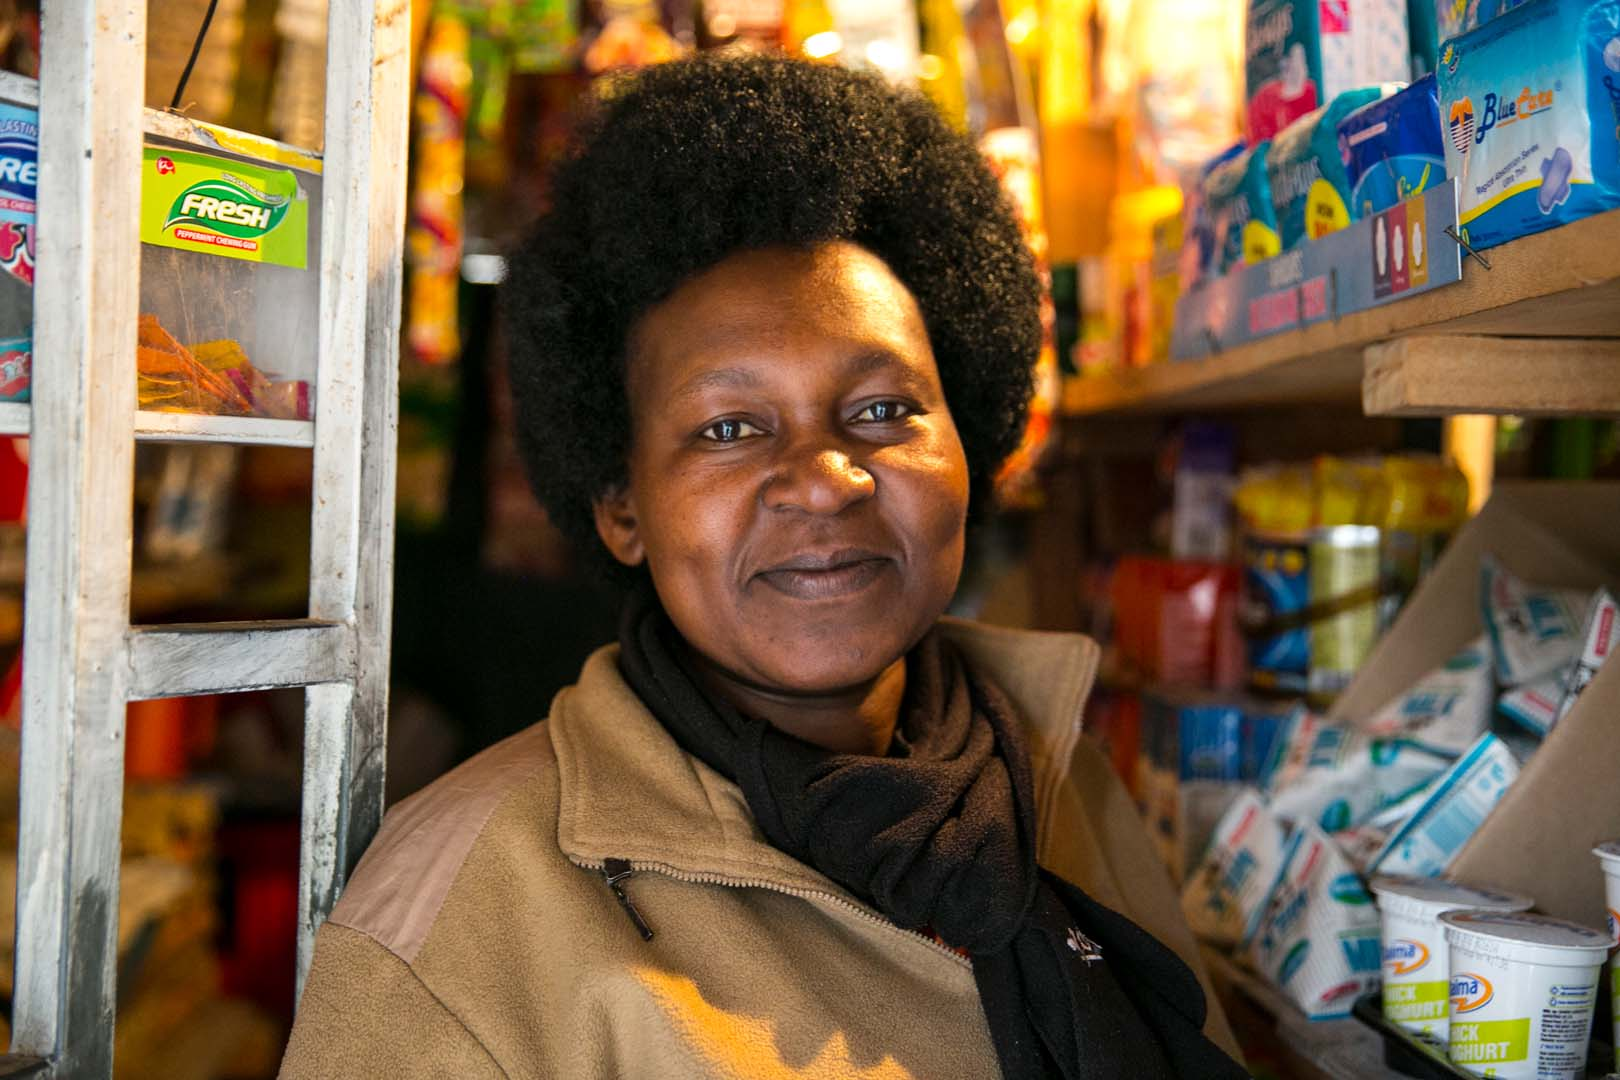 Business solutions to poverty help micro-retailers in Kenya improve their lives and livelihoods.